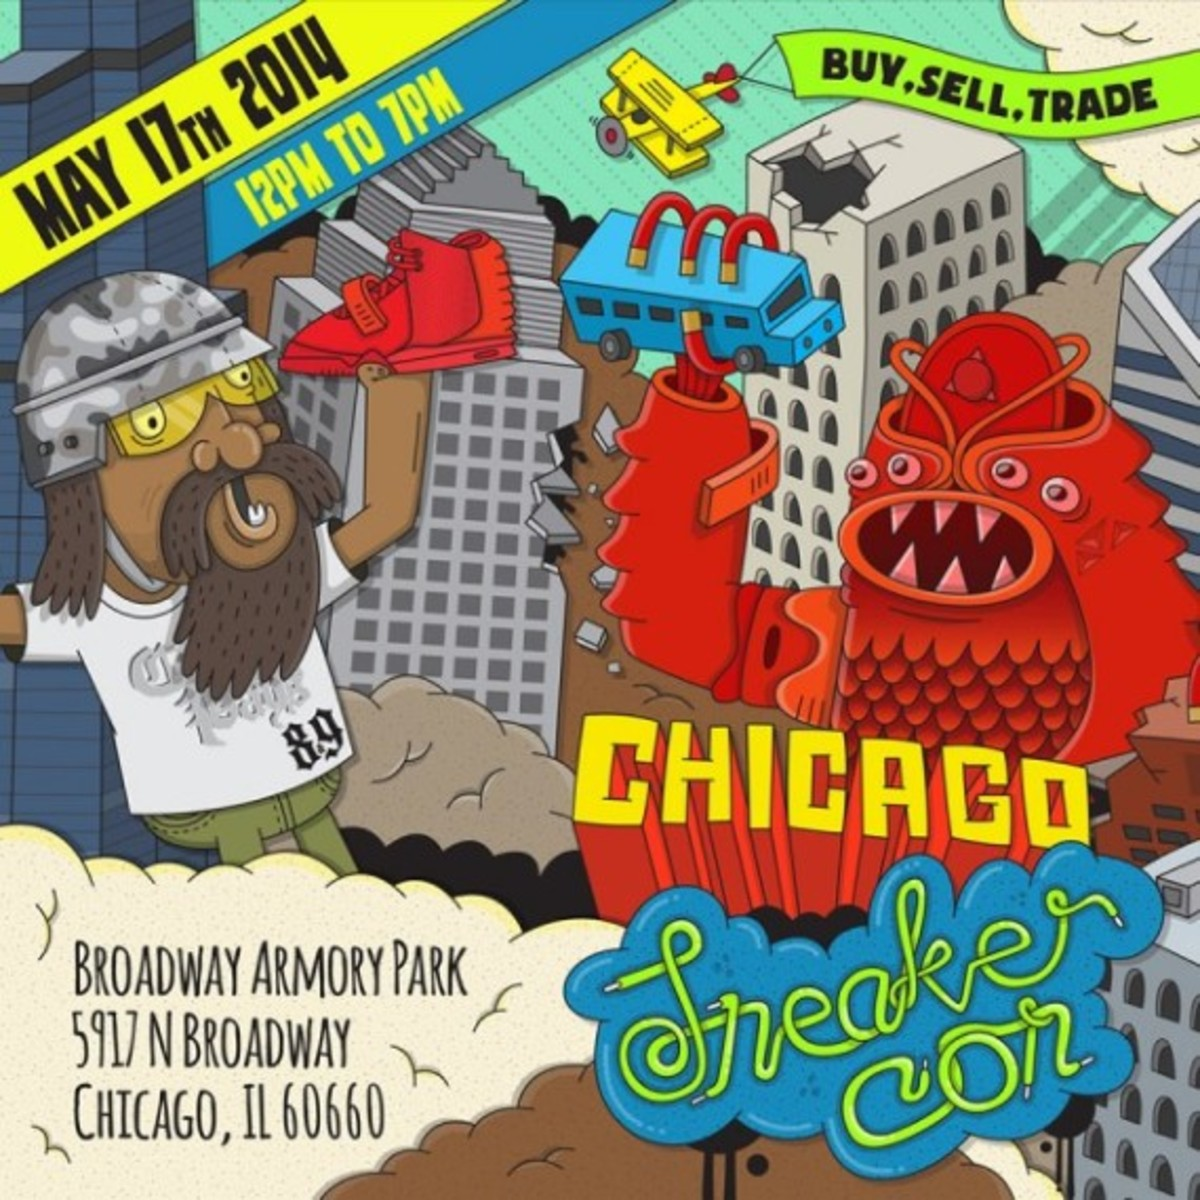 Sneaker Con Chicago – May 17th, 2014 | Event Reminder - 1